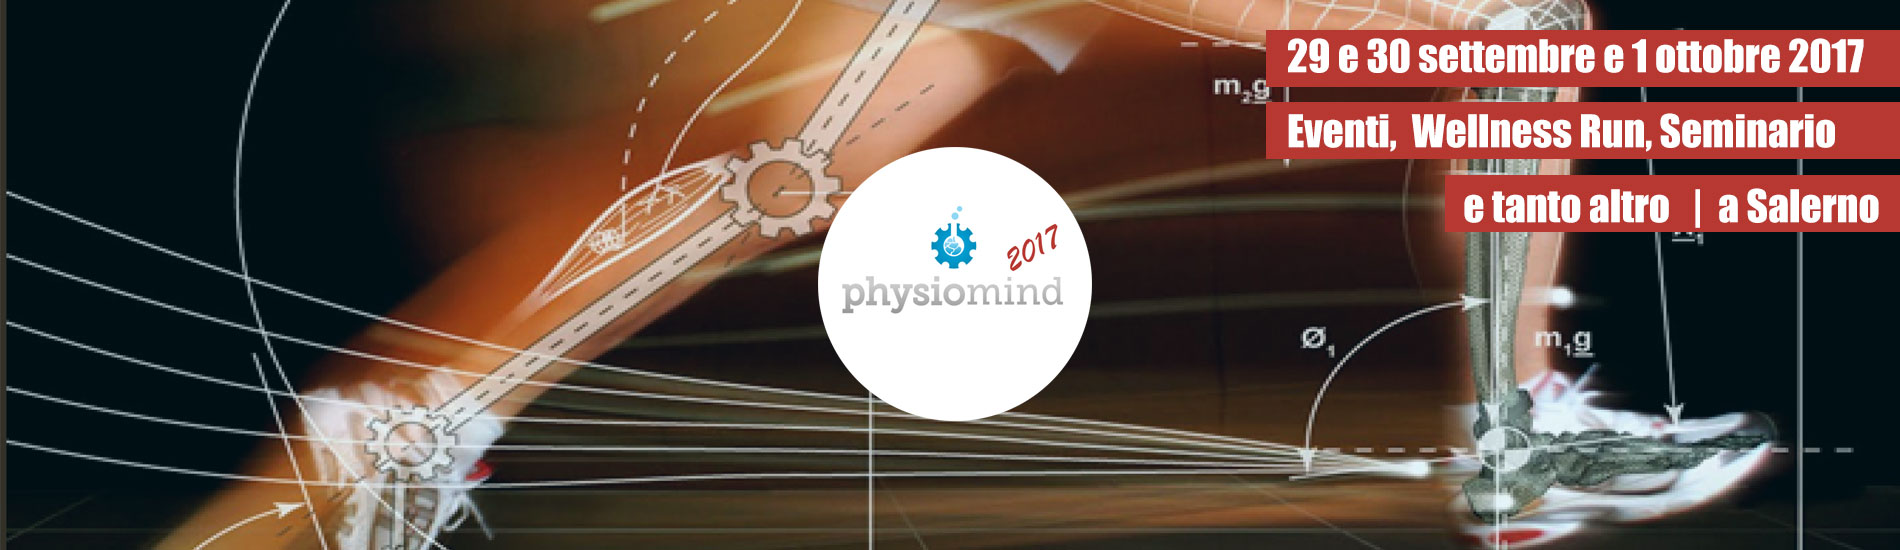 Physiomind 2017